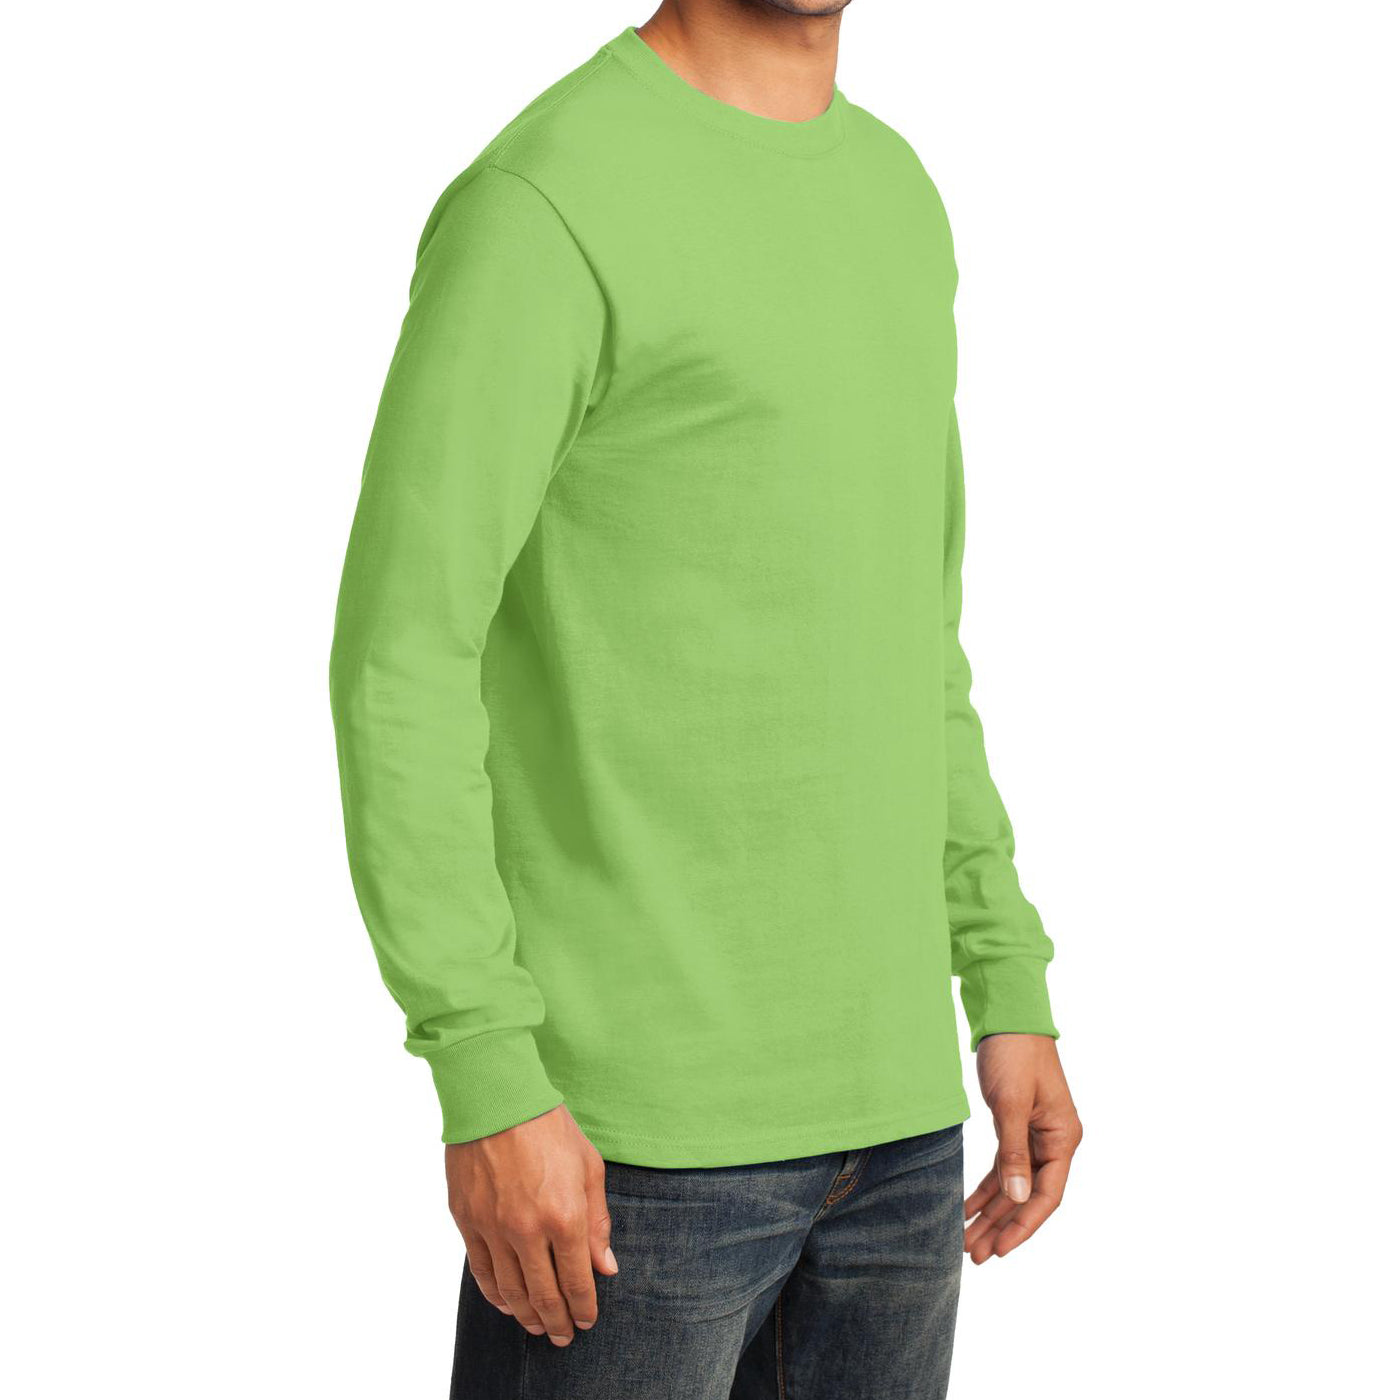 Men's Long Sleeve Essential Tee - Lime - Side